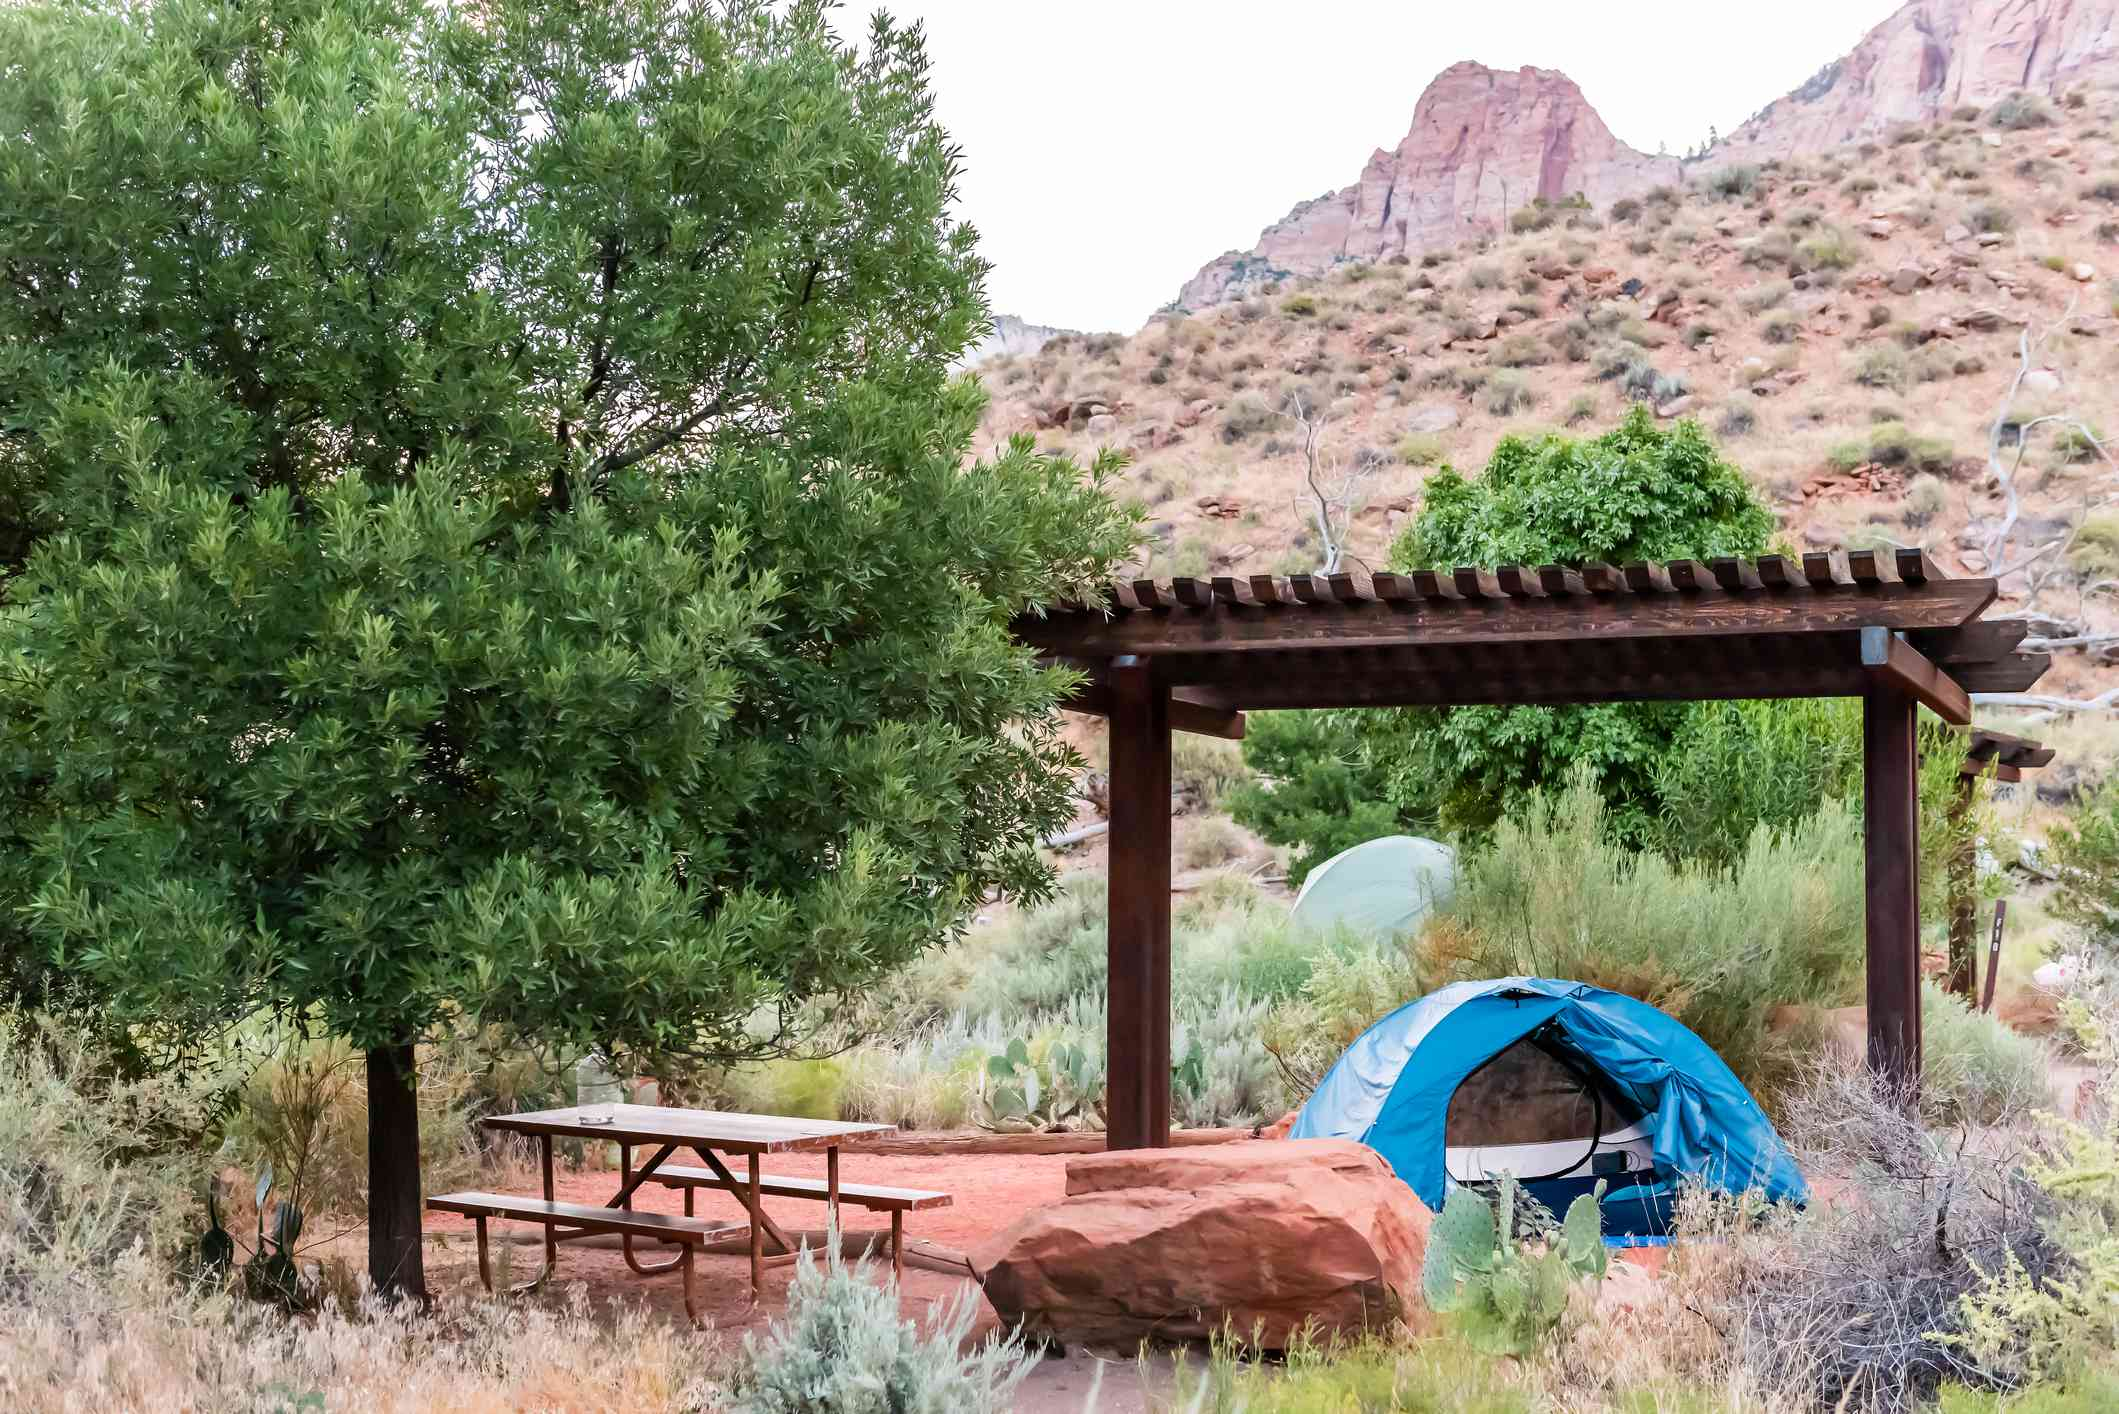 Zion National Park in Utah morning with tent on camp site at Watchman Campground with picnic table and pergola cover